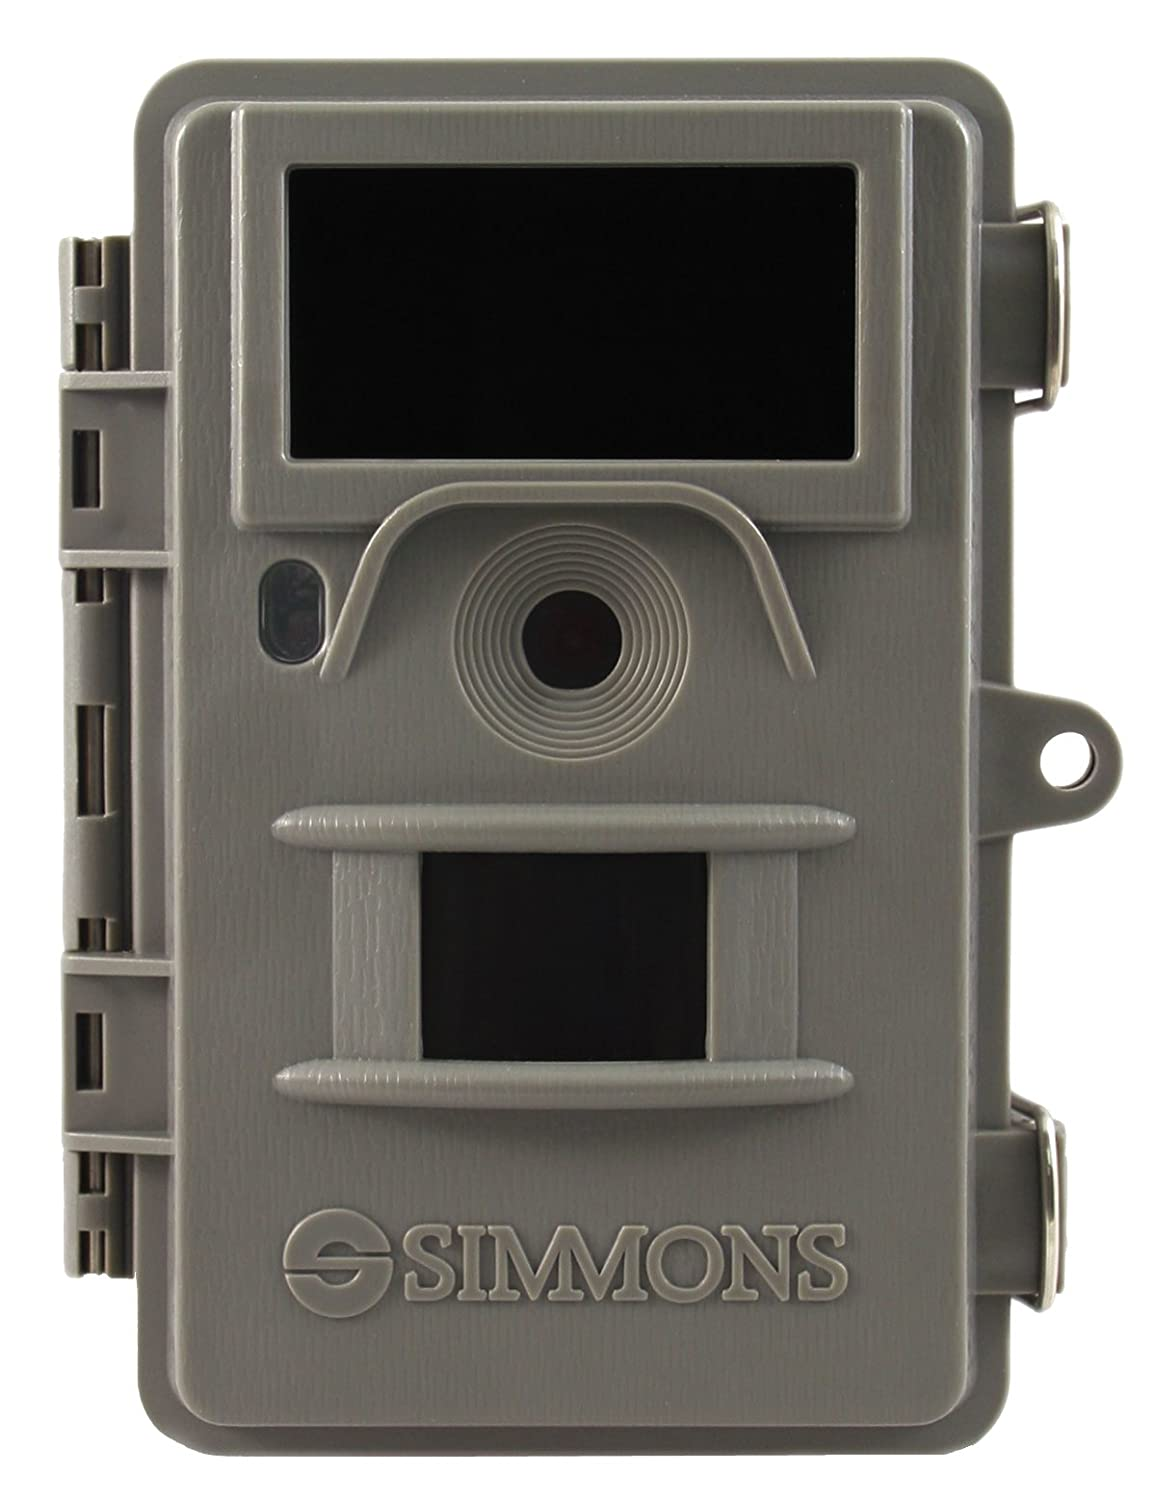 Best Cheap Trail Camera: Gaming the Game! - Hunter Attic